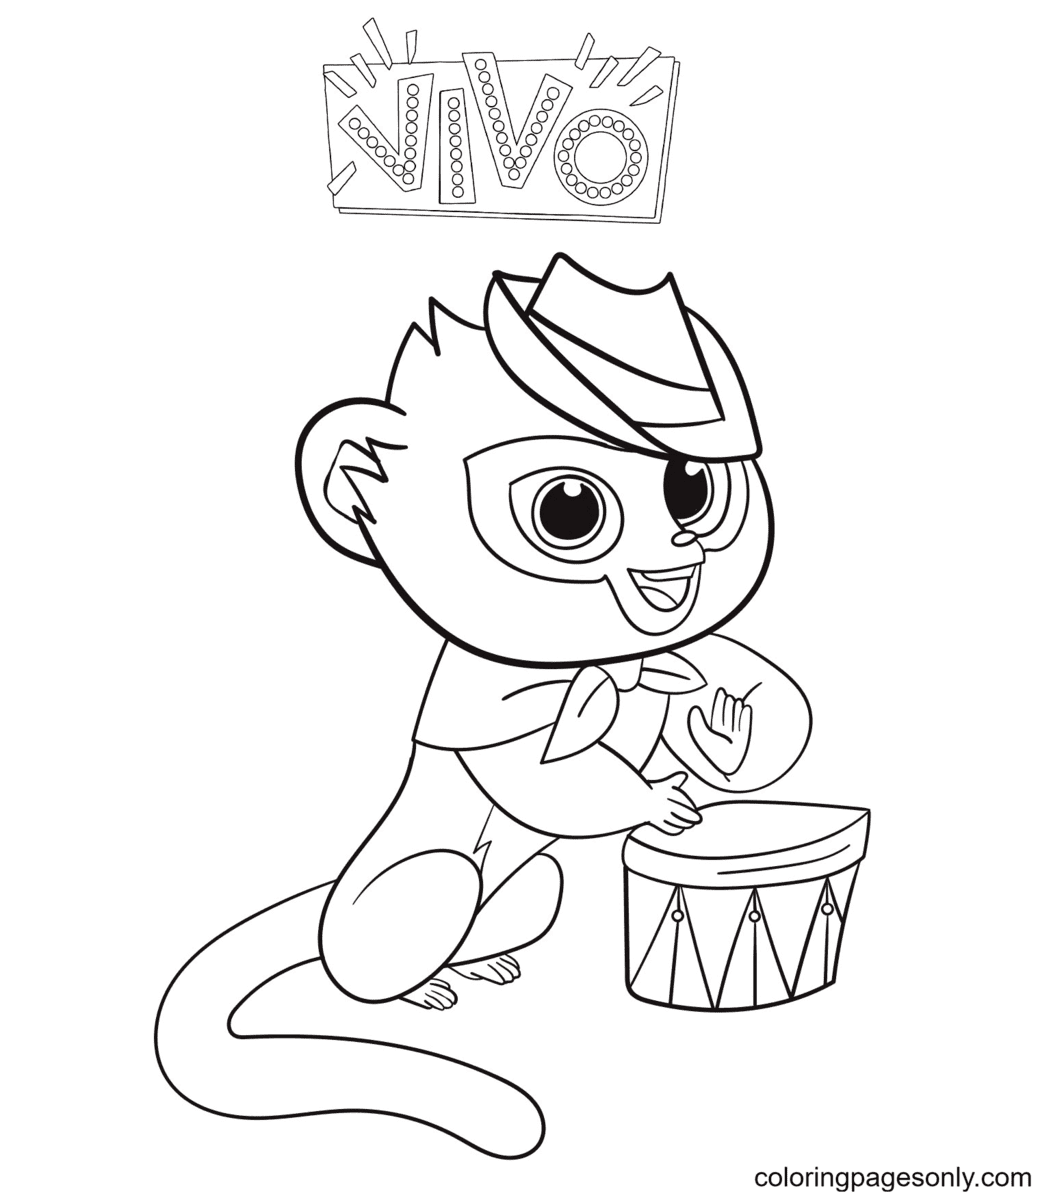 Vivo Playing Drums Coloring Page